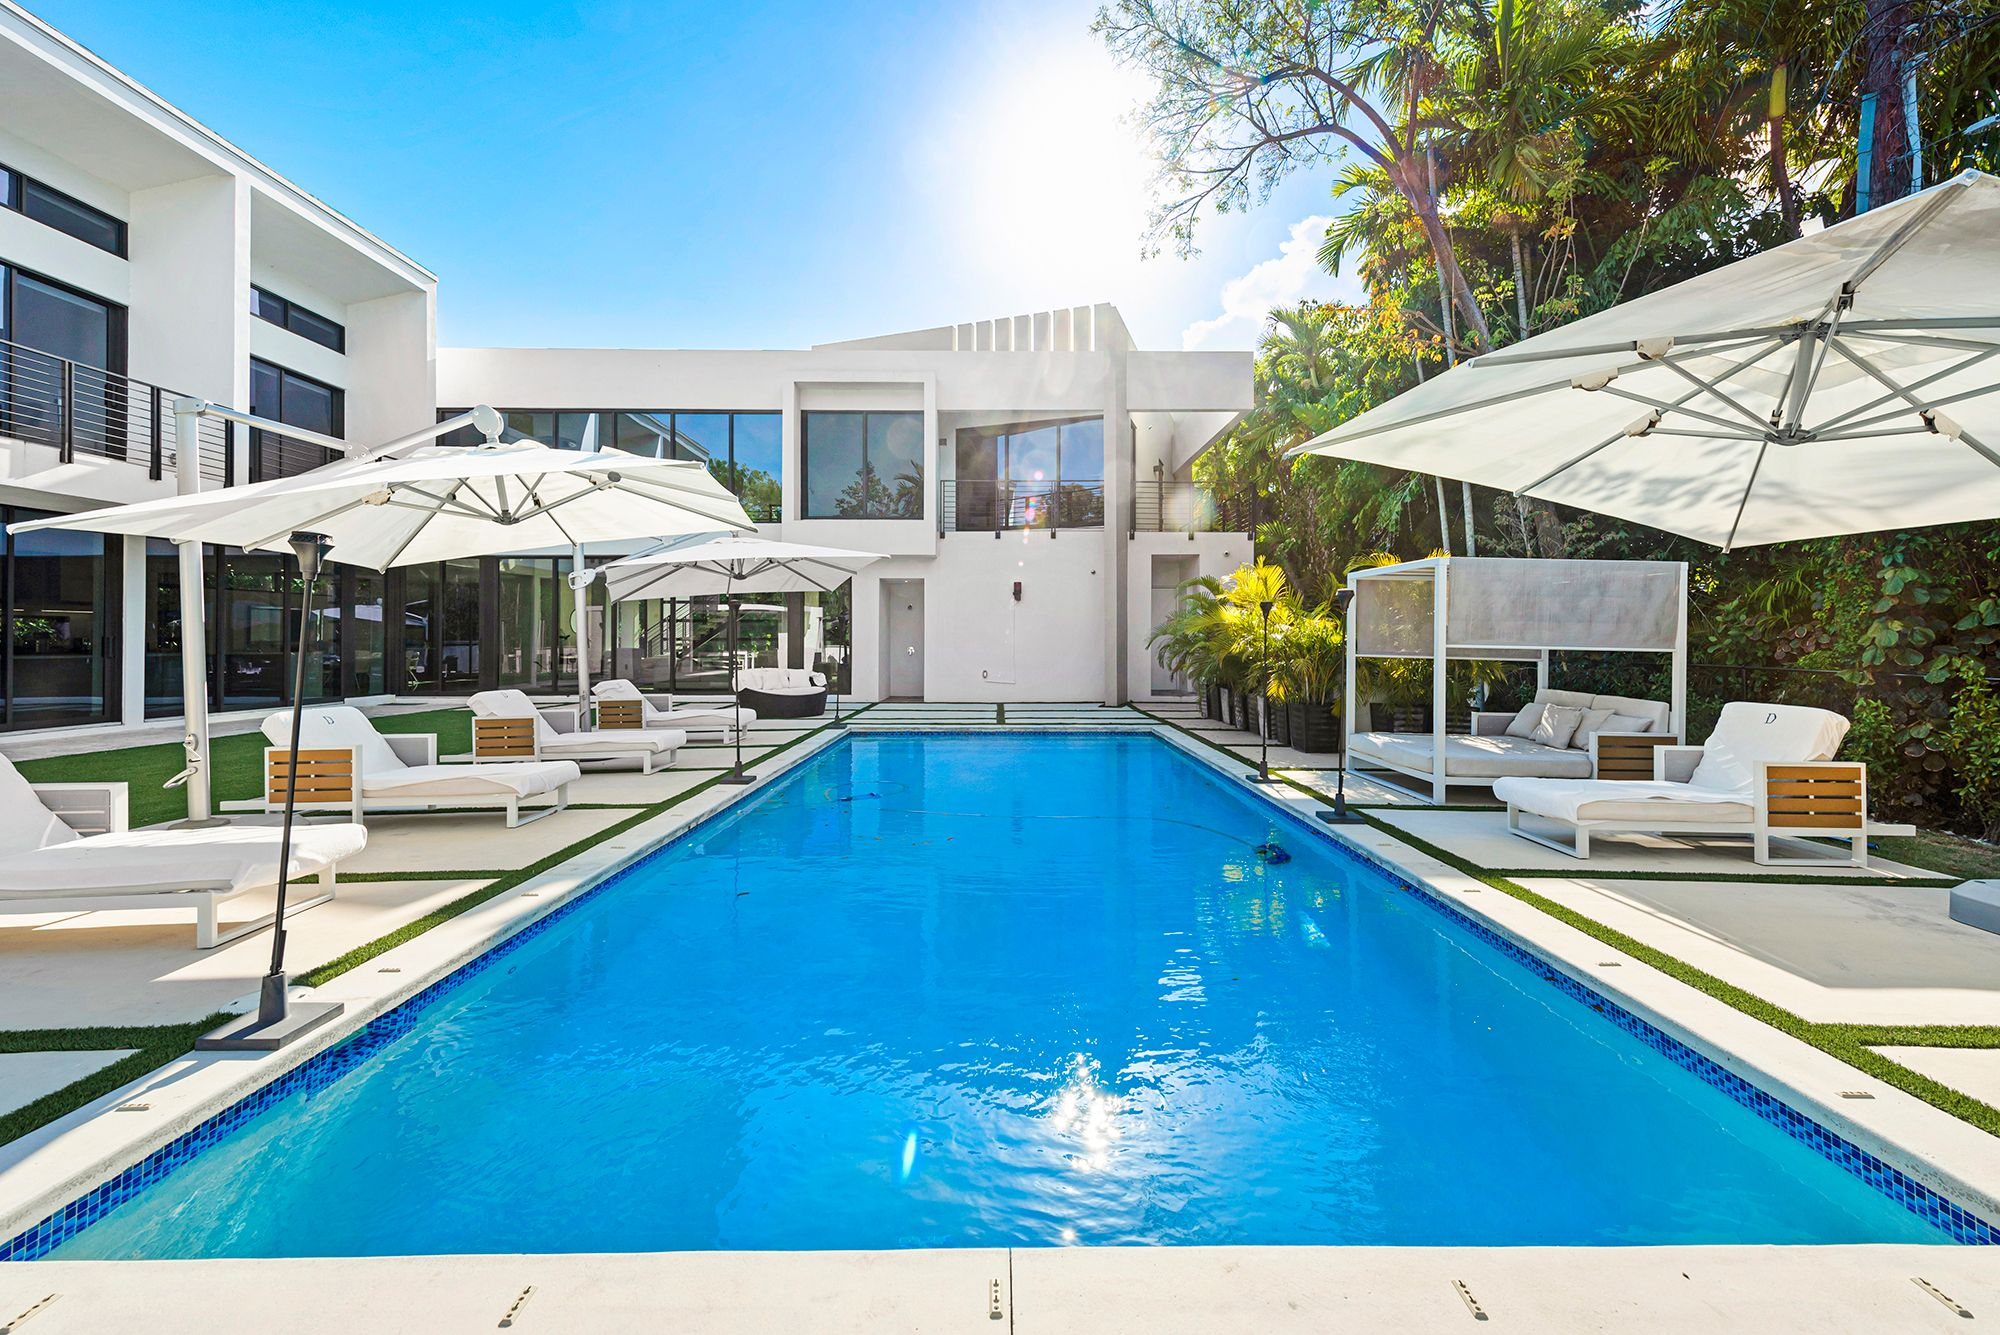 Los Angeles, Miami and Cabo Rentals Available This Summer